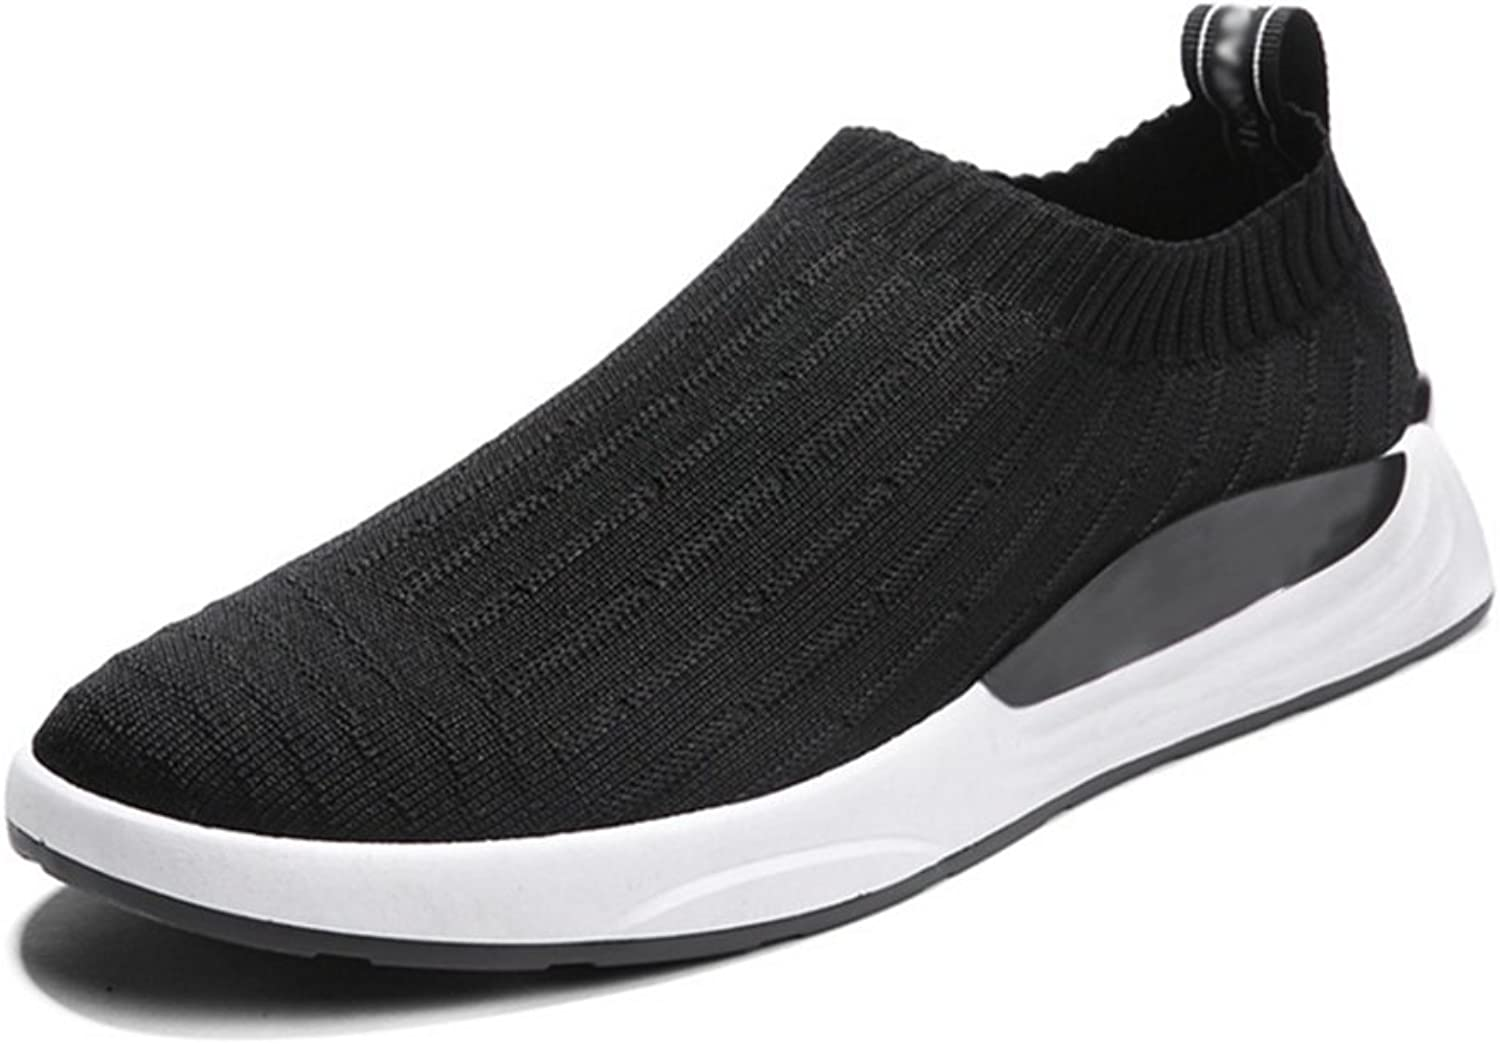 RENMEN Spring summer casual shoes men's shoes breathable flying woven shoes student tide shoes sports shoes 39-43, black